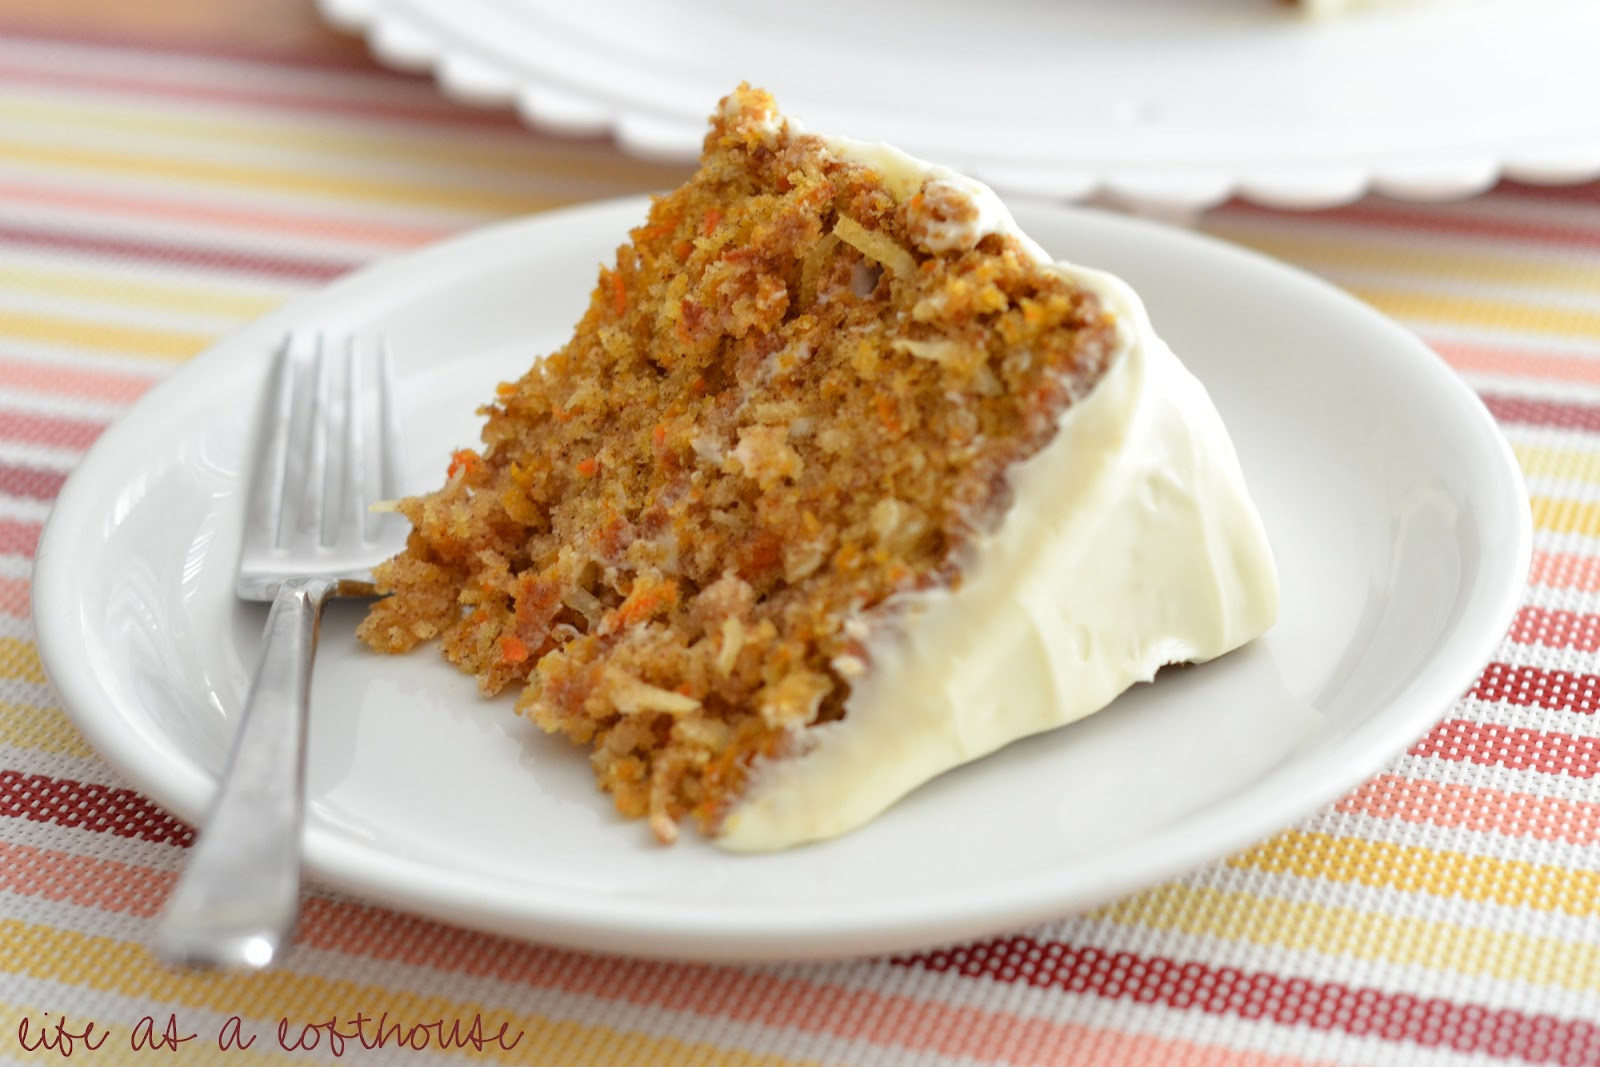 Best Carrot Cake Recipe  The Best Carrot Cake with Cream Cheese Frosting